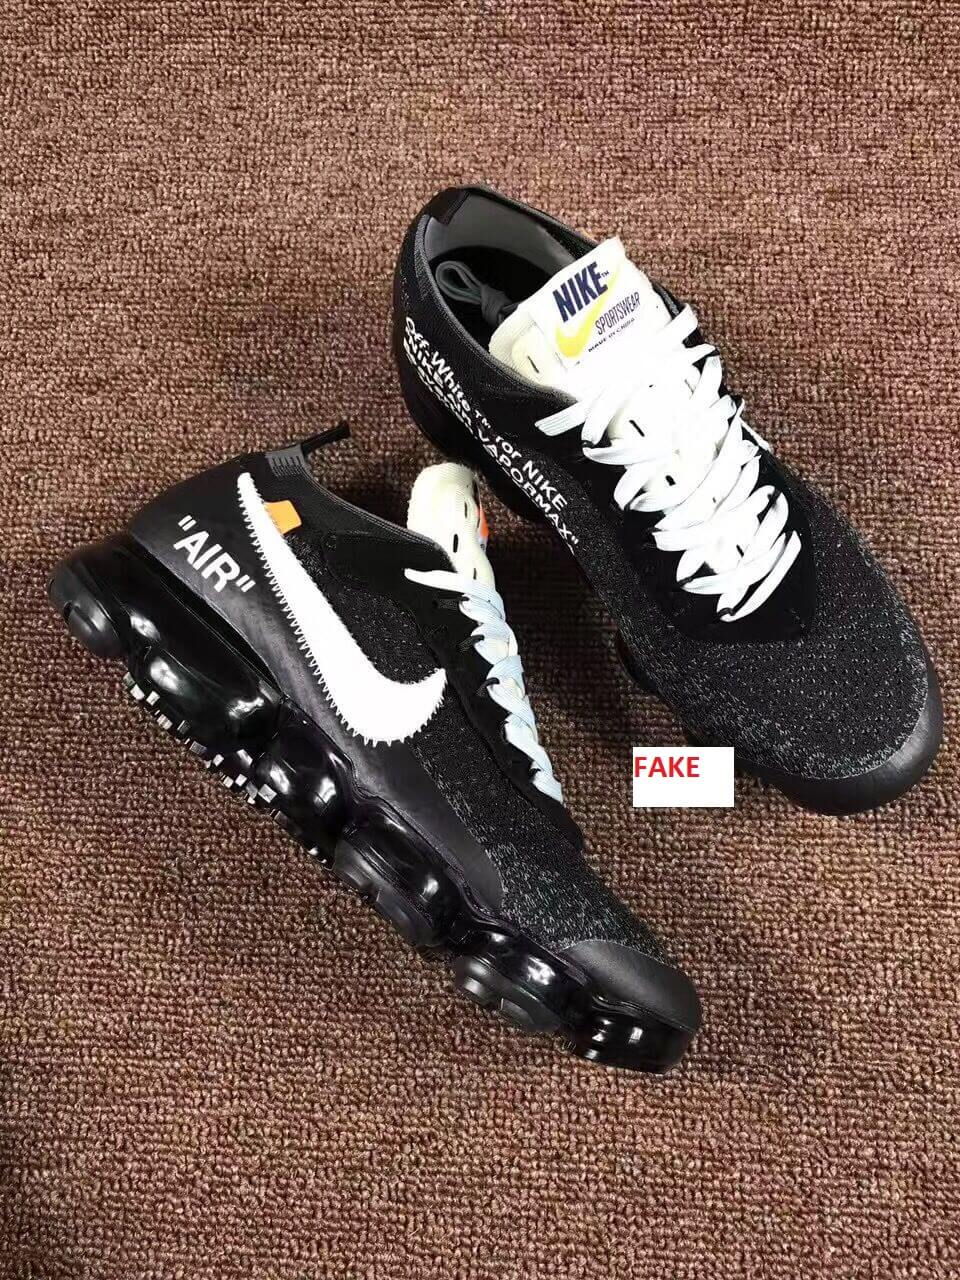 Scary Good Fake Off White Nike Air Vapormax Sneakers Are On